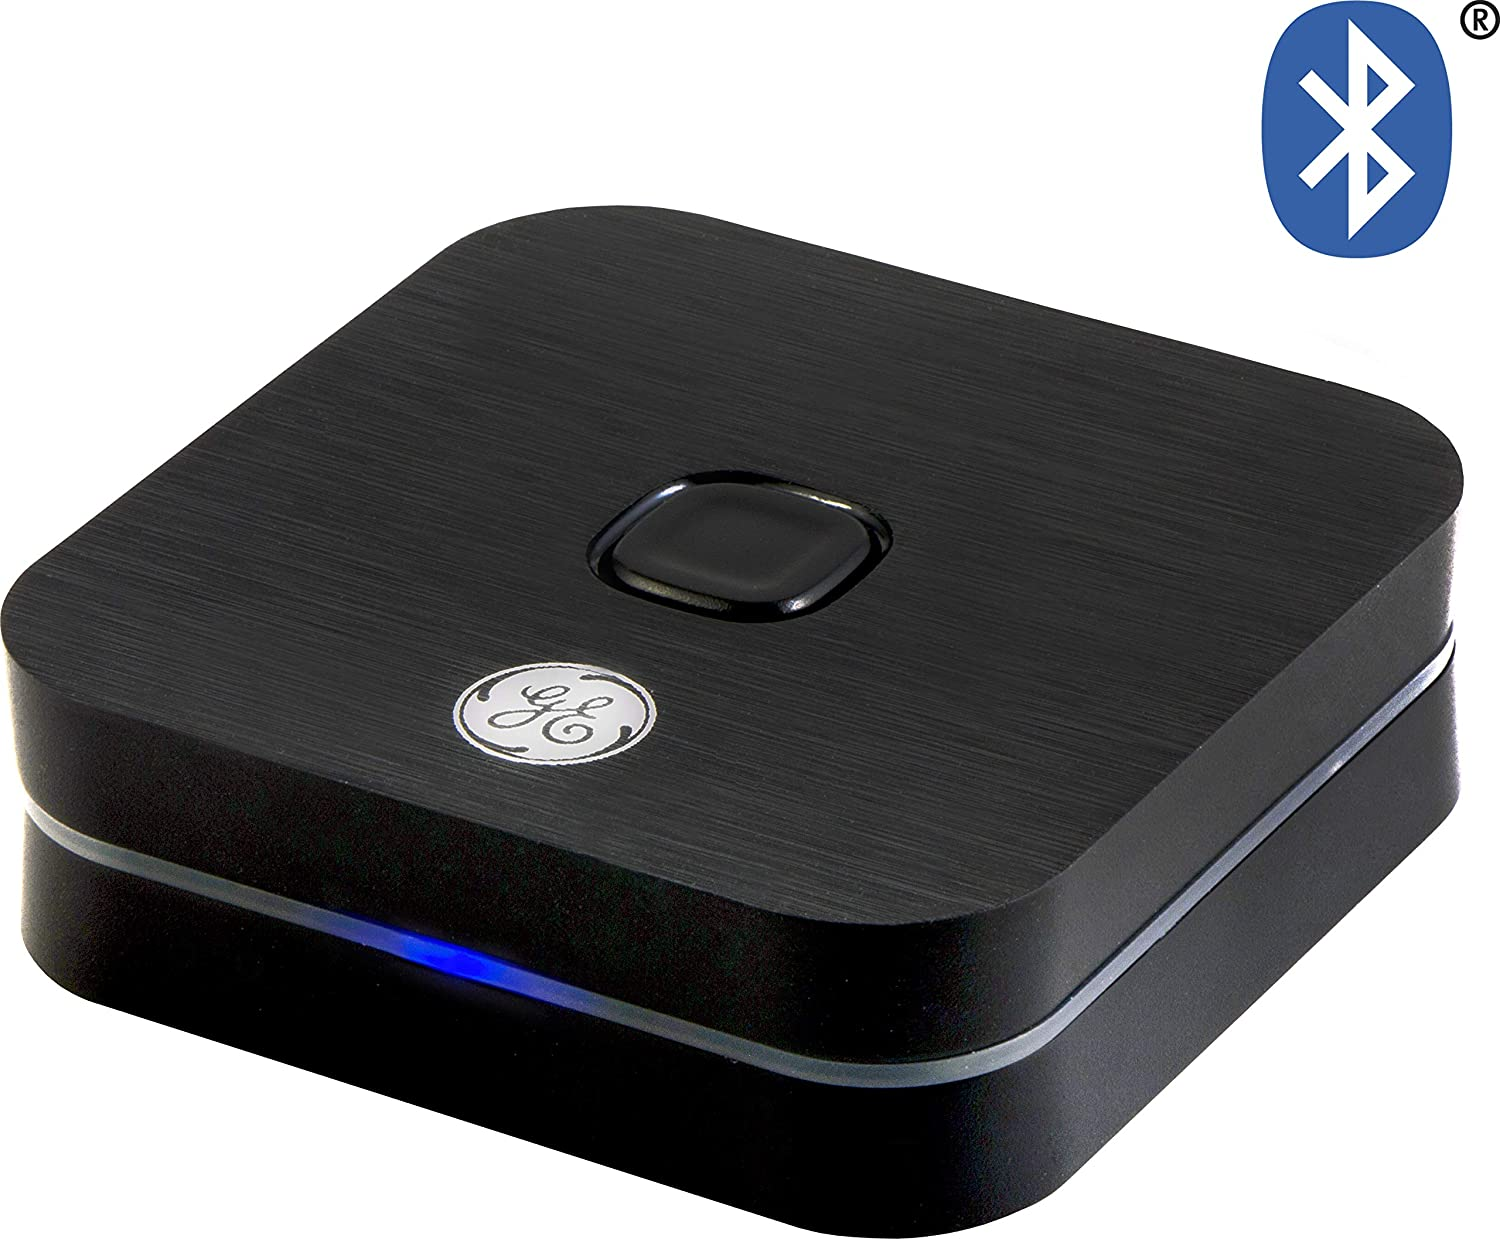 GE Bluetooth Audio Receiver, Supports A2DP, Sbc, Fcc Certified, Micro USB Charging Cord, 3.5mm Audio Cable, 3.5mm to RCA Adapter, Pair with Smartphone, Tablet, Laptop, Black, 33625